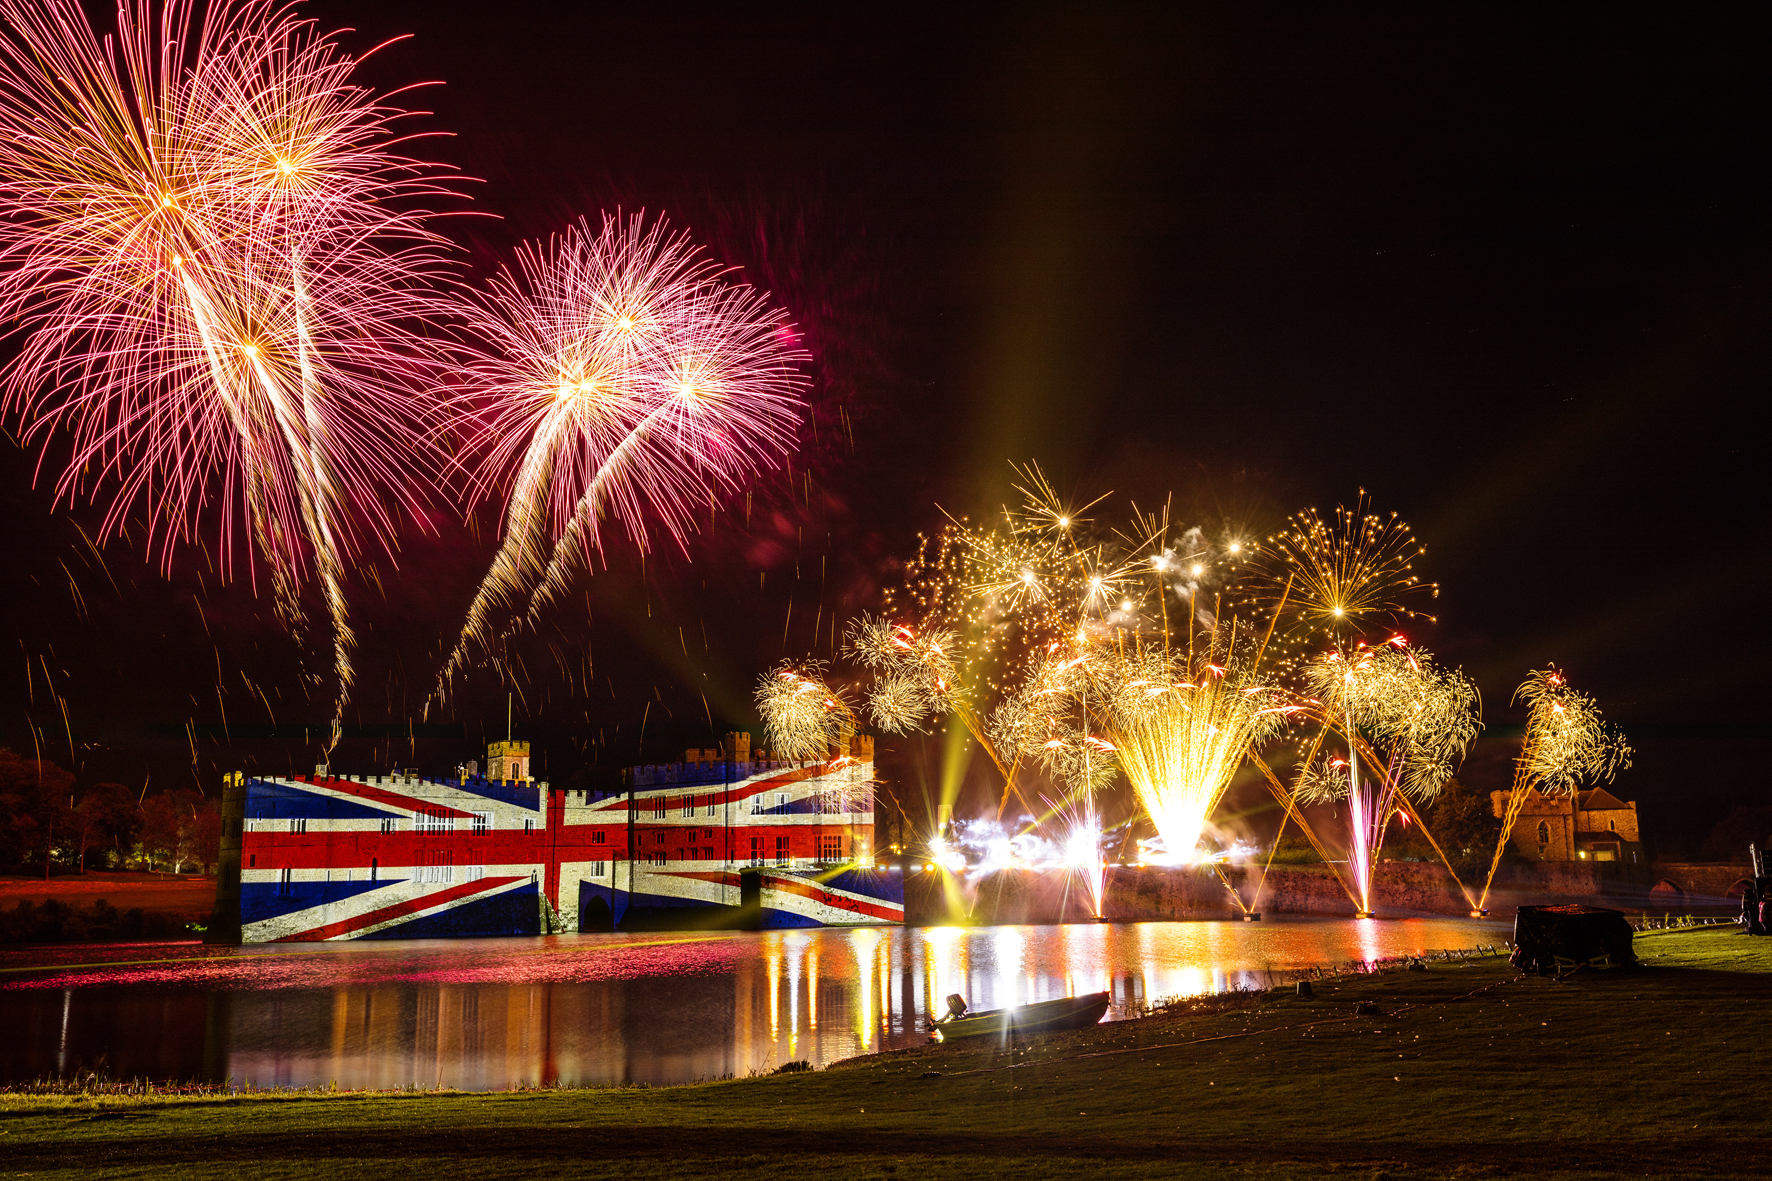 leeds-castle-fireworks-uk-1508336157